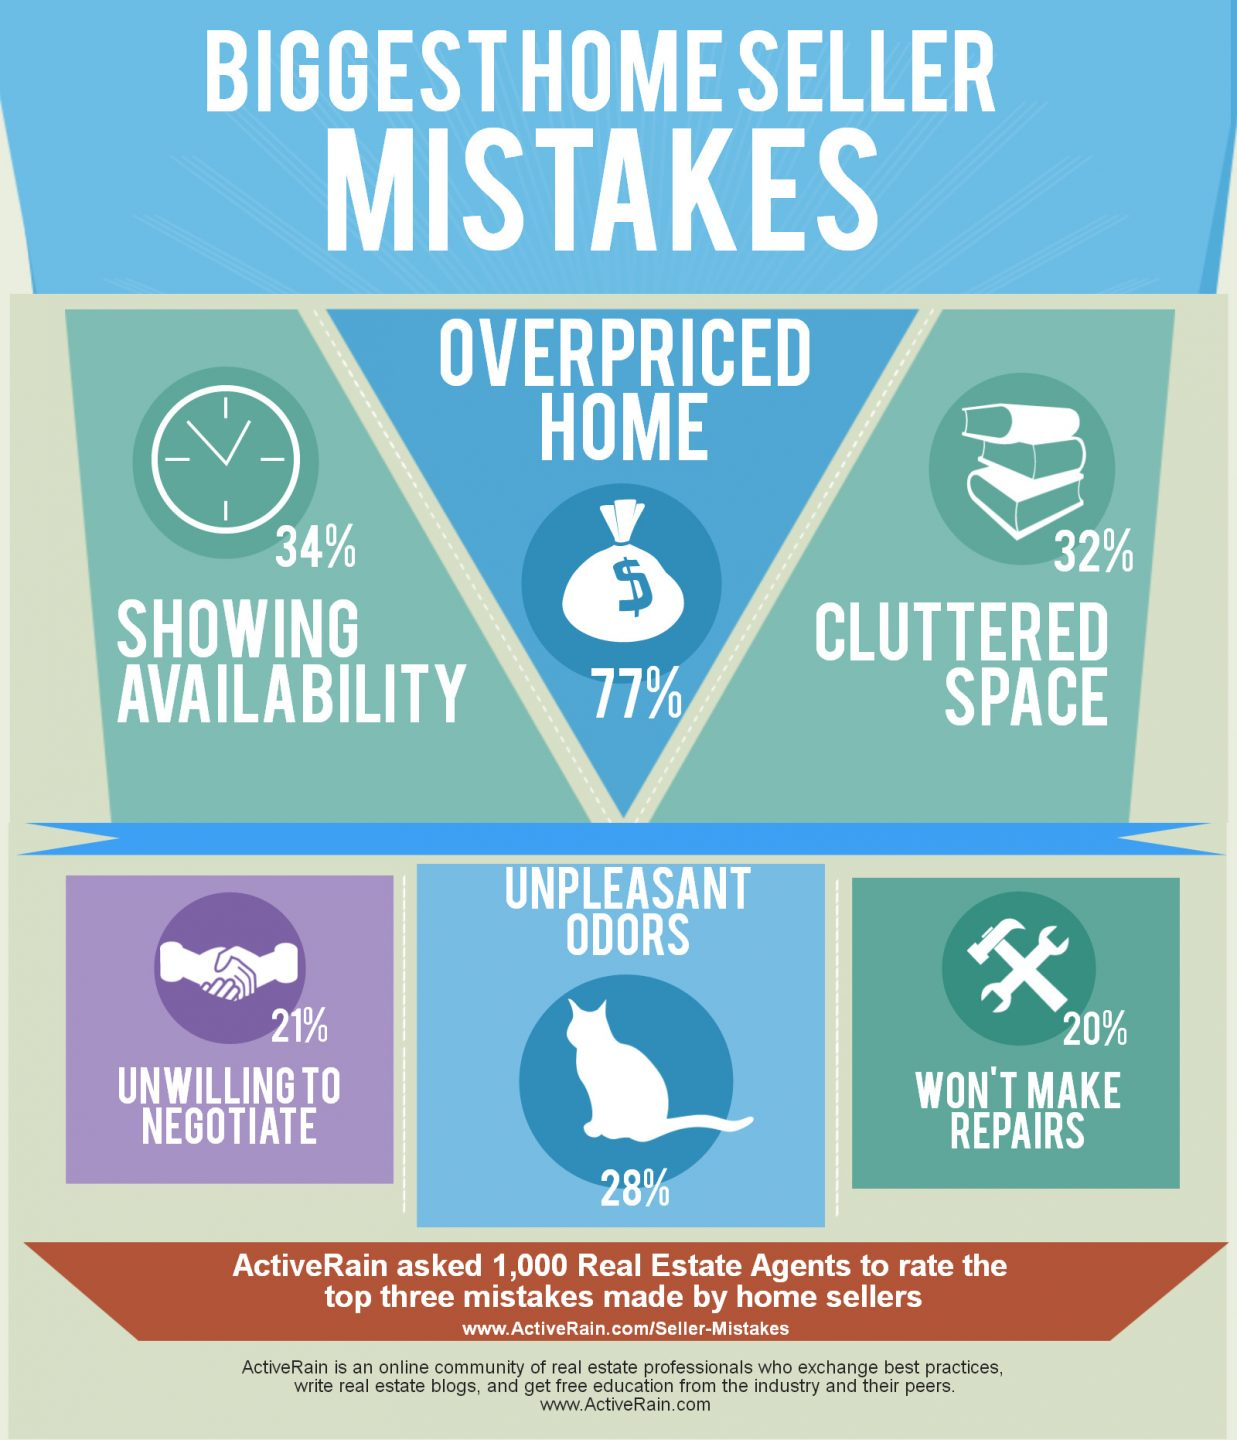 Biggest Home Seller Mistakes